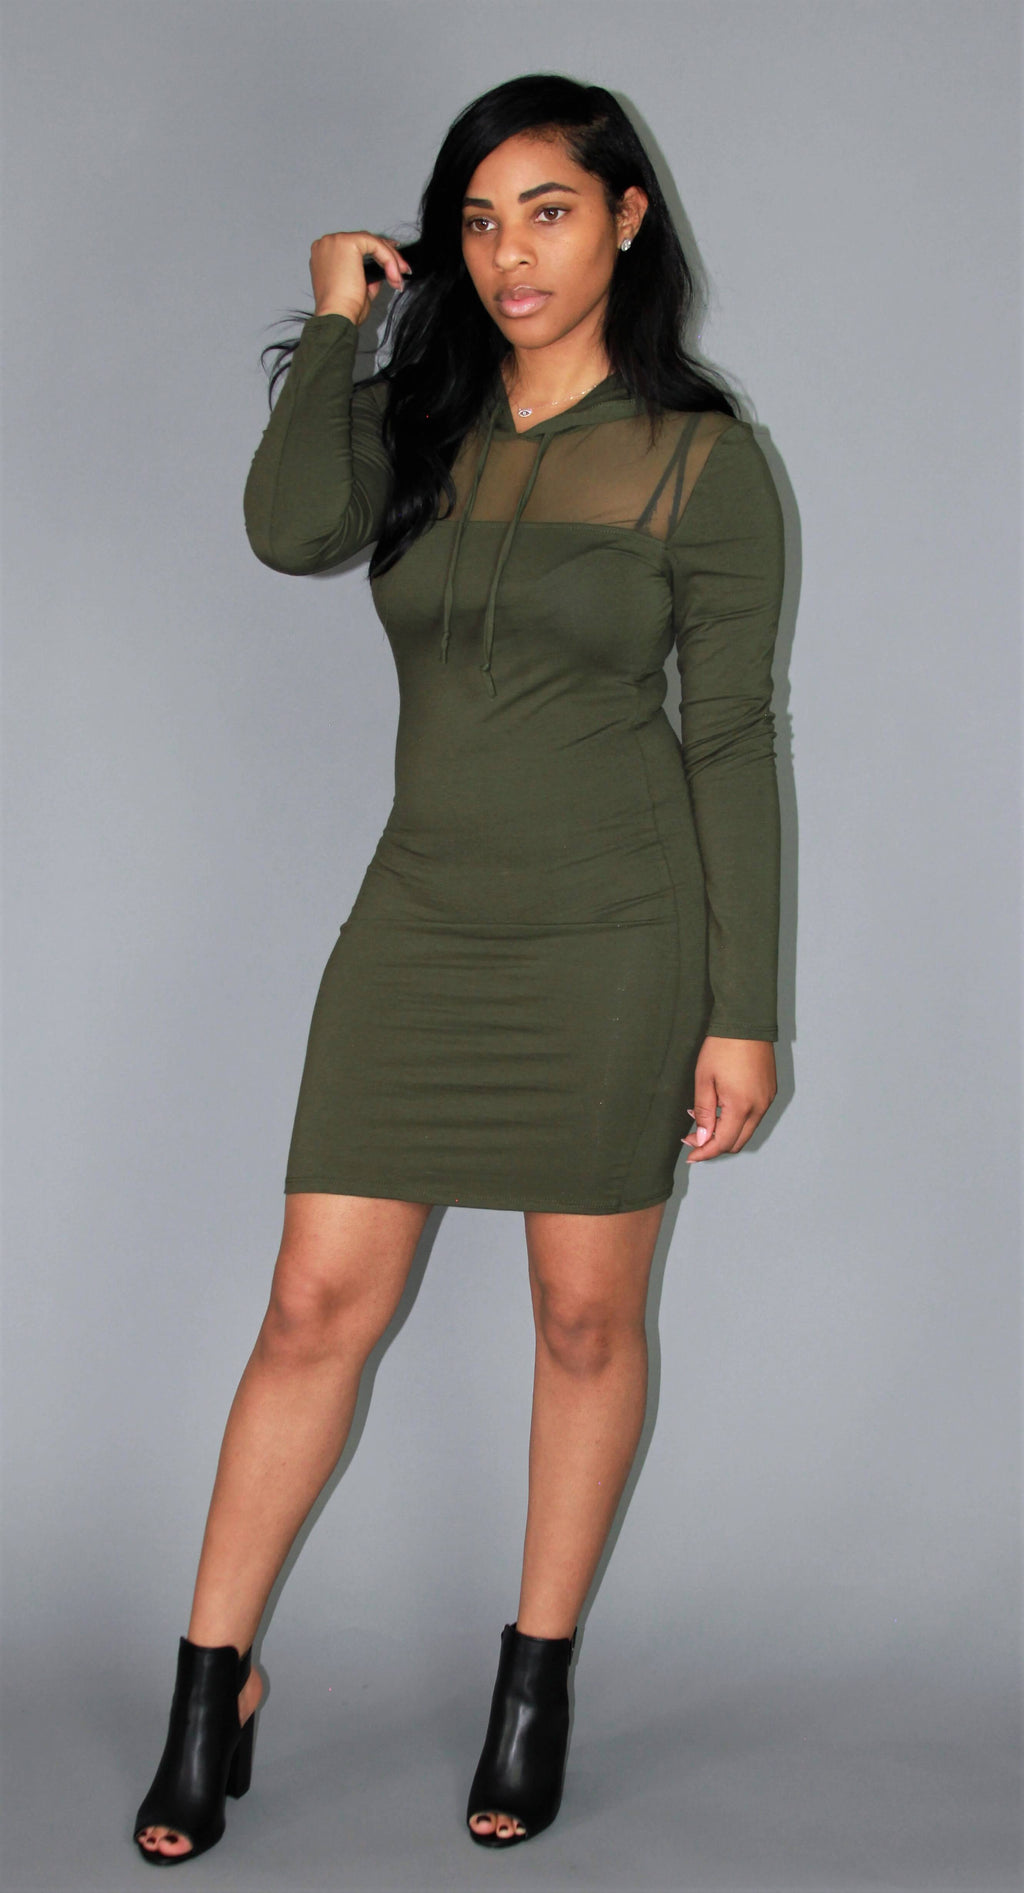 DOWN 2 EARTH OLIVE MESH DRESS